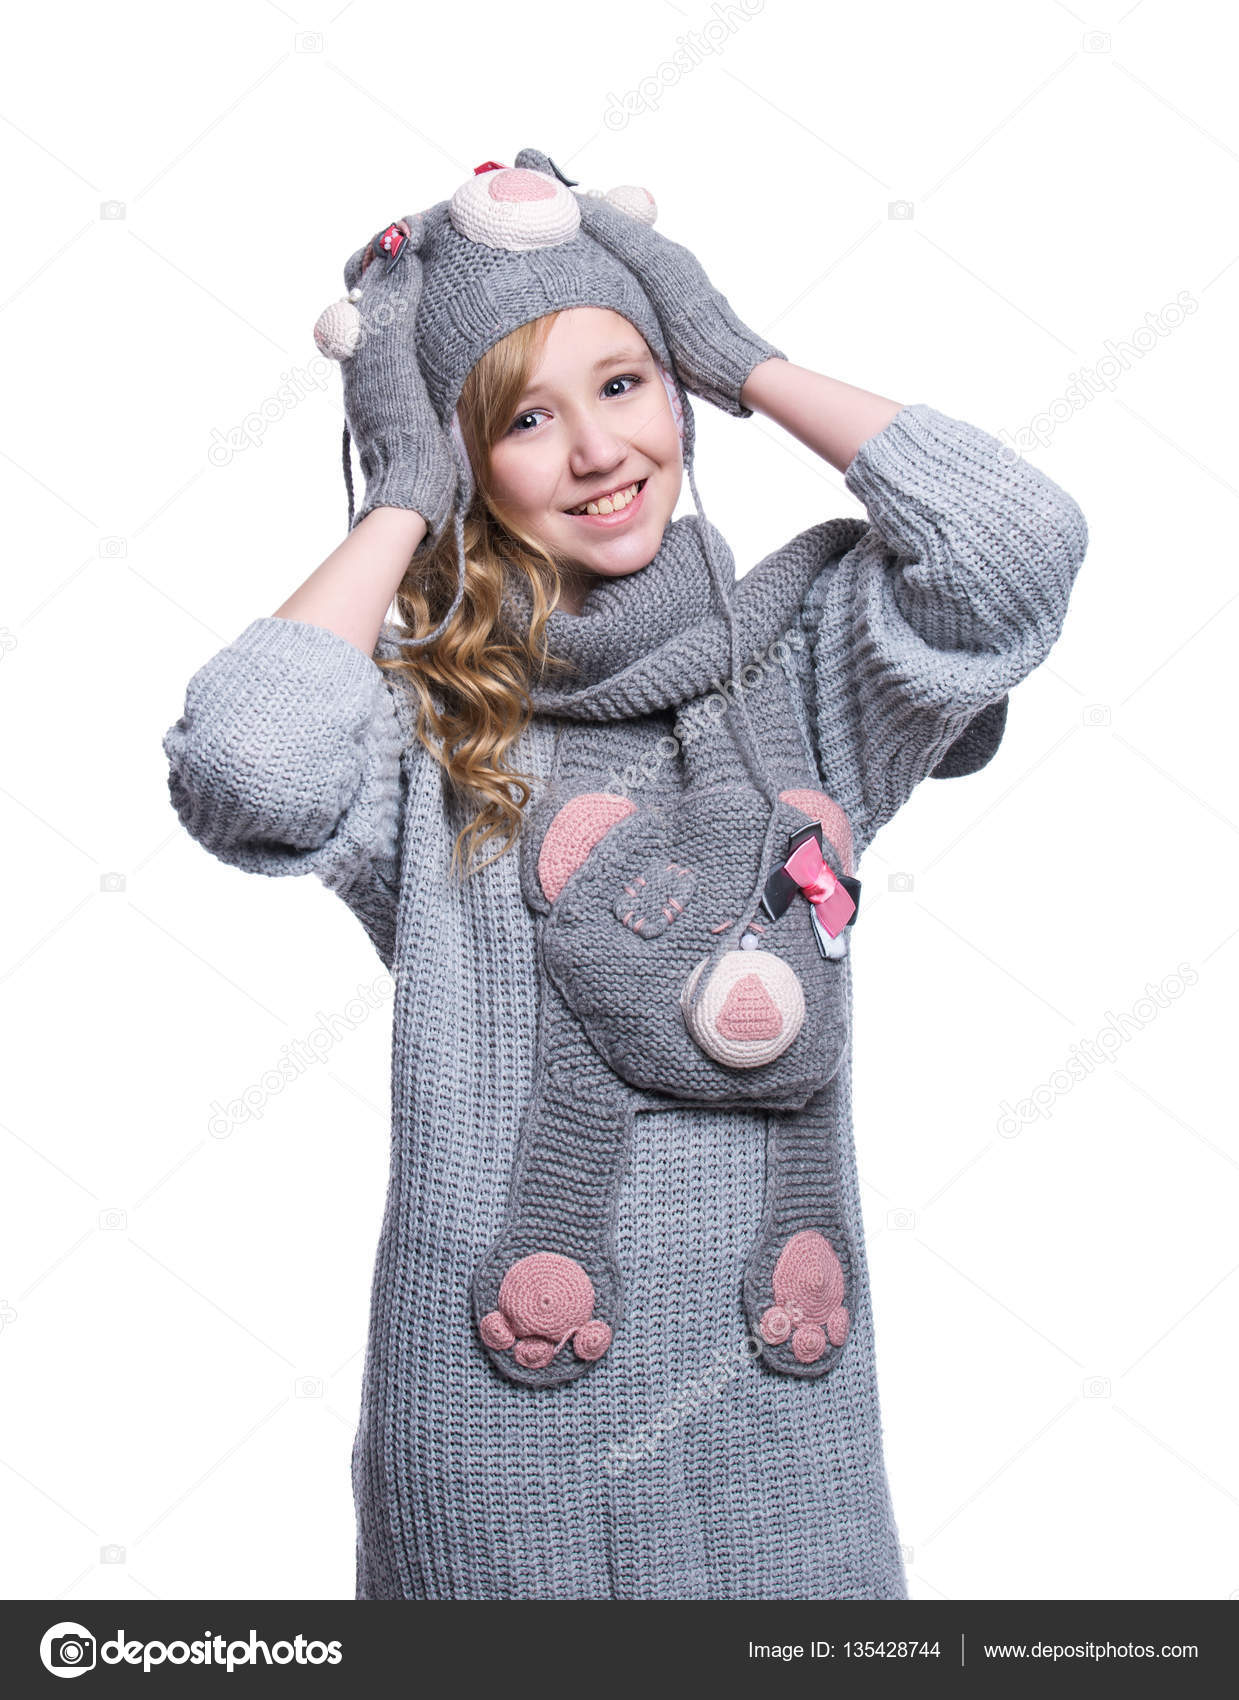 Lovely cheerful teenage girl wearing fuzzy sweater, scarf, mittens